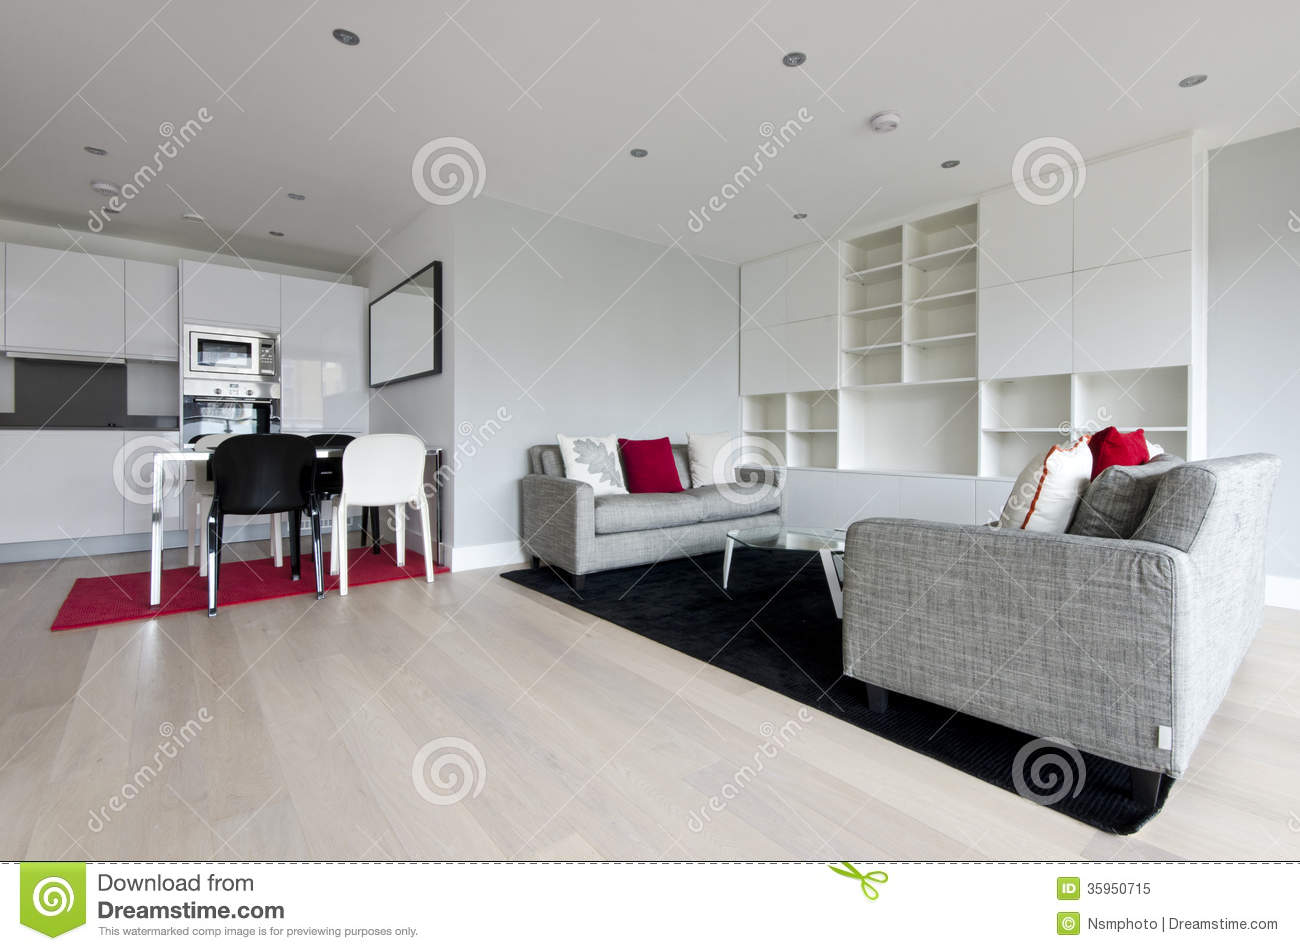 salon ouvert moderne de plan avec la cuisine enti rement adapt e photo libre de droits image. Black Bedroom Furniture Sets. Home Design Ideas